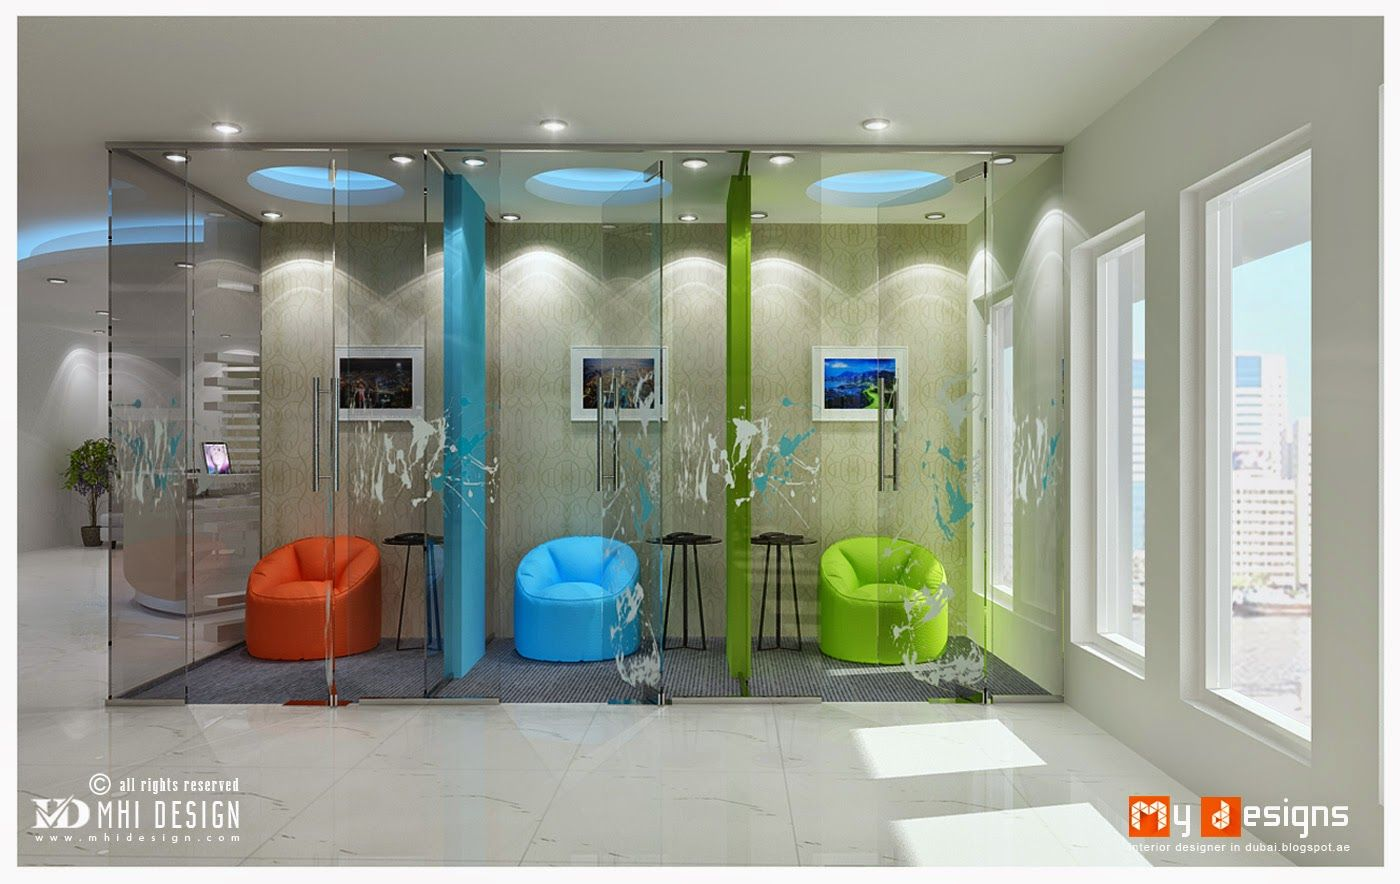 Dubai office interior space designs hi friends this is for One agency interior design dubai